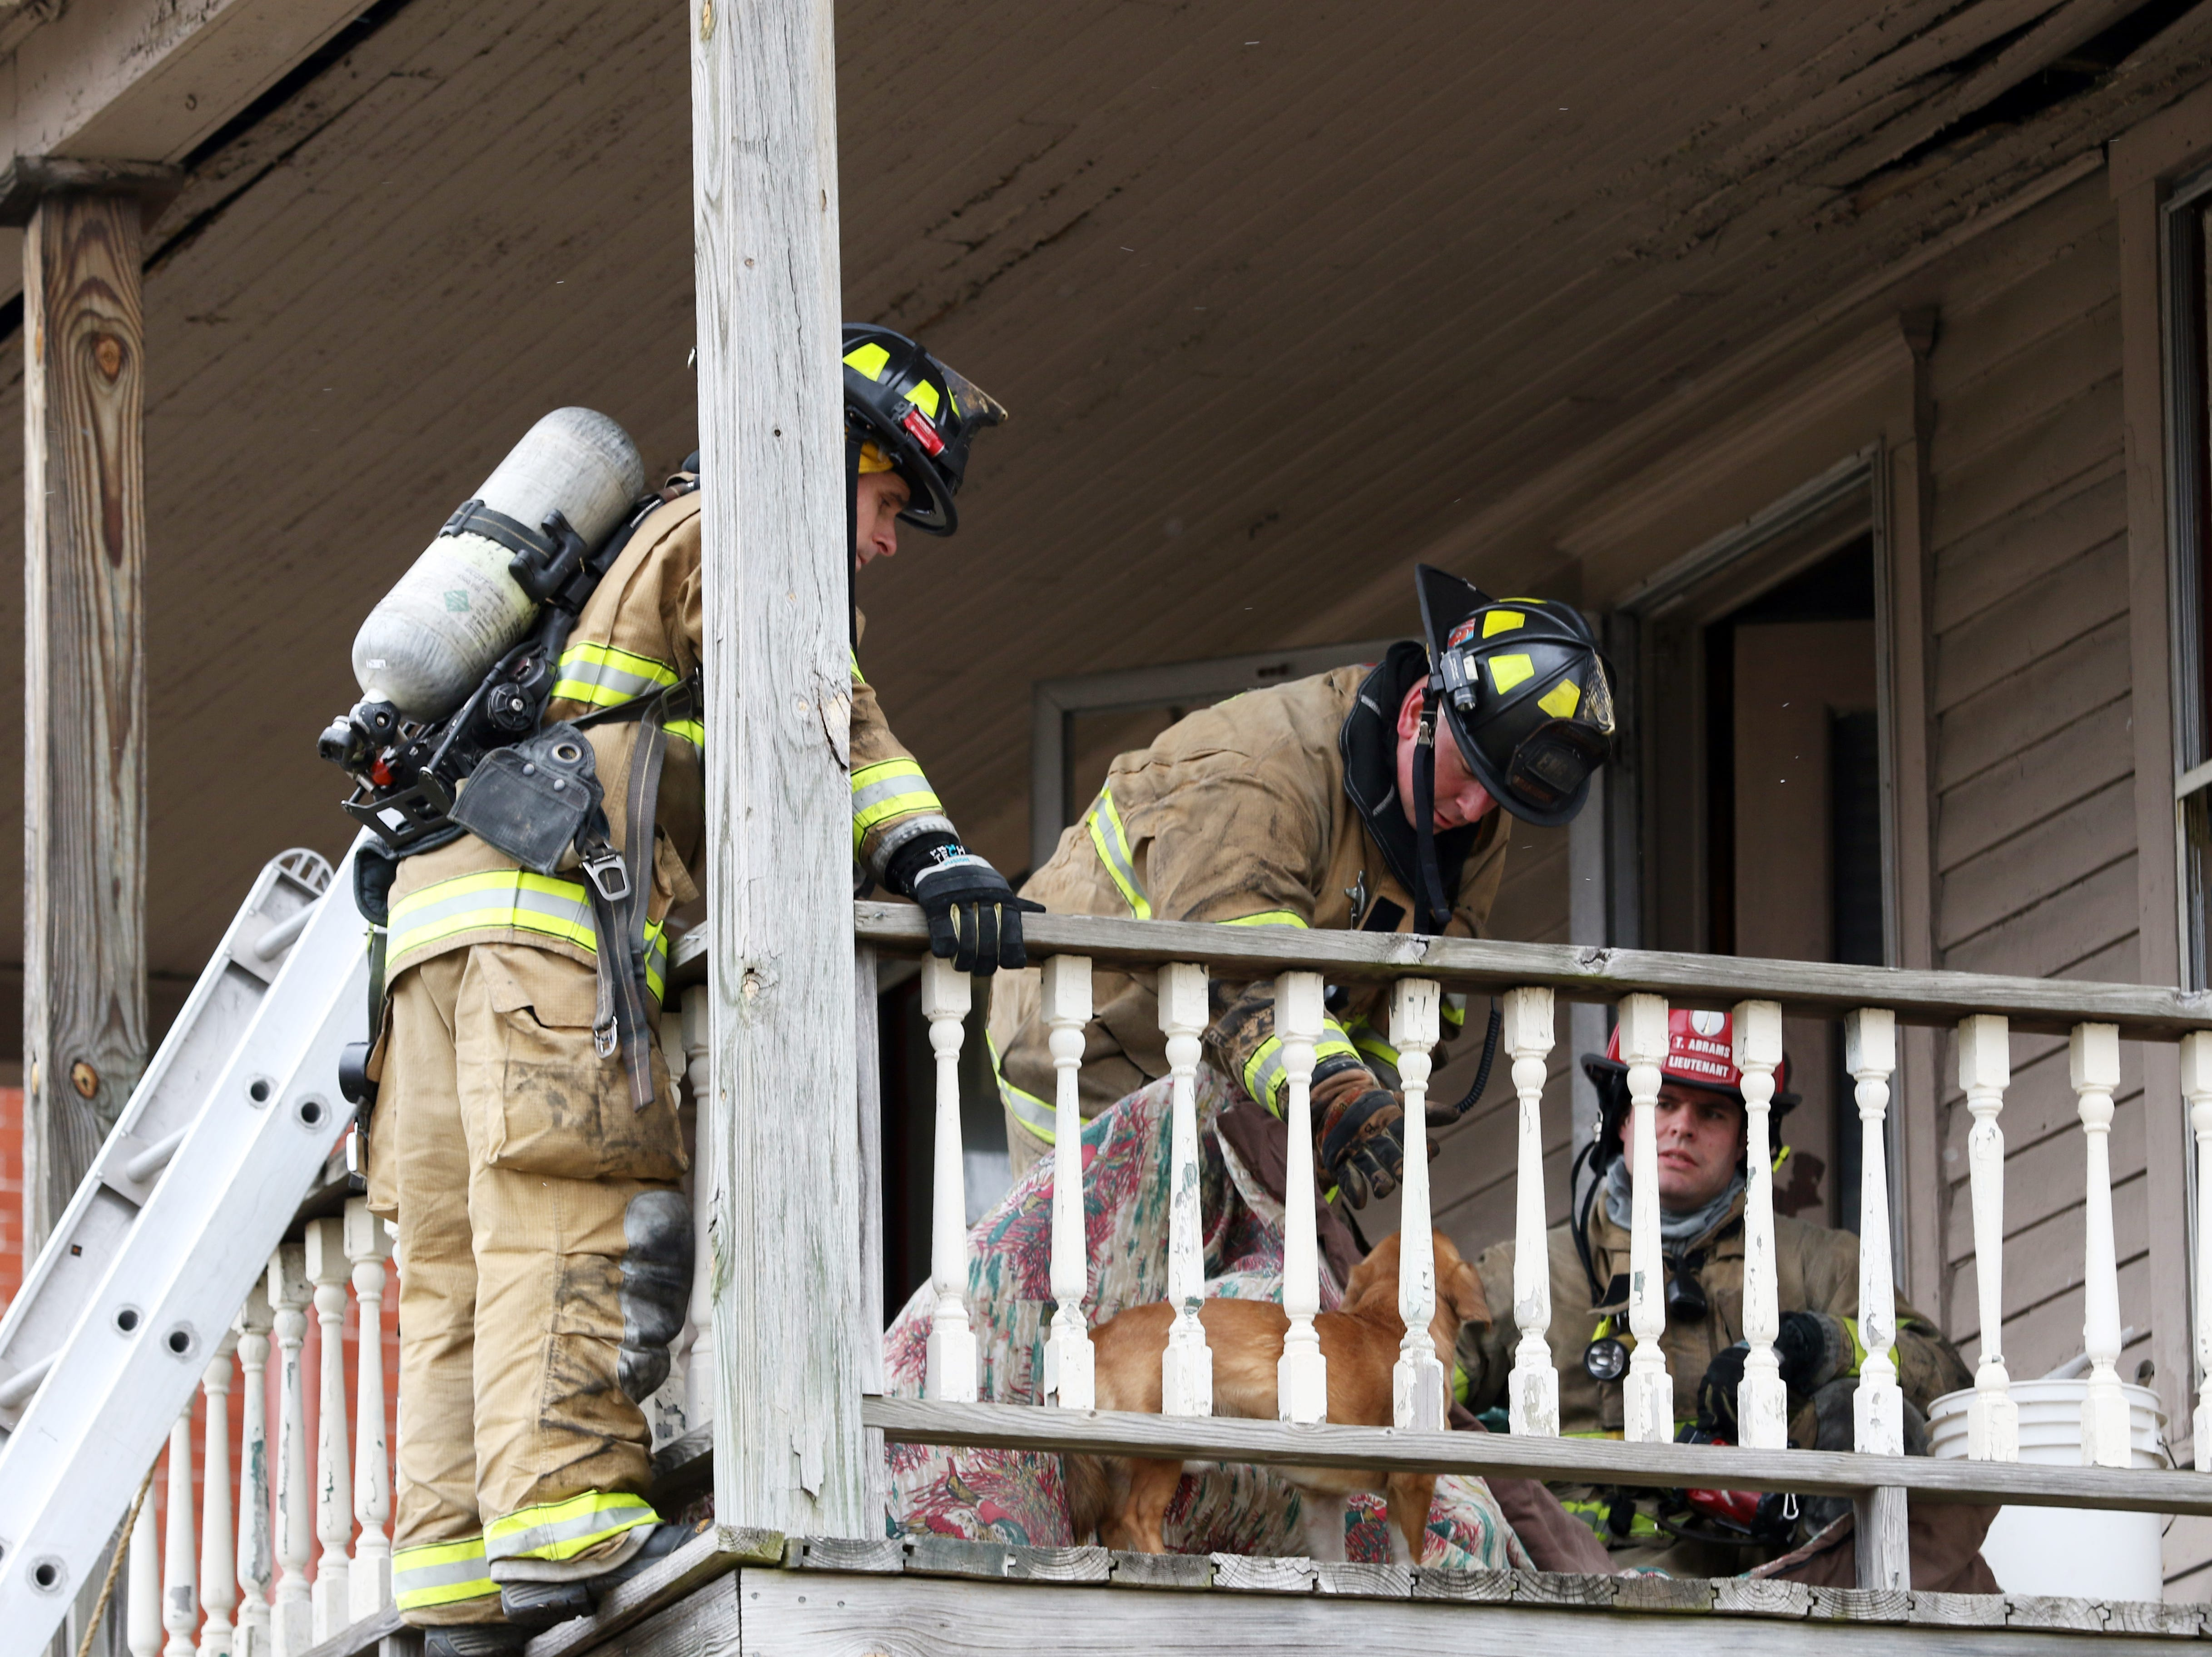 The Zanesville Fire Department fought a fire at 924 Maple Avenue in Zanesville Monday afternoon. Two people were taken to the hospital because of the blaze. Firefighters try to coax a dog from the porch after the fire. The dog was unenthusiastic about the rescue, but was safely removed from the porch.